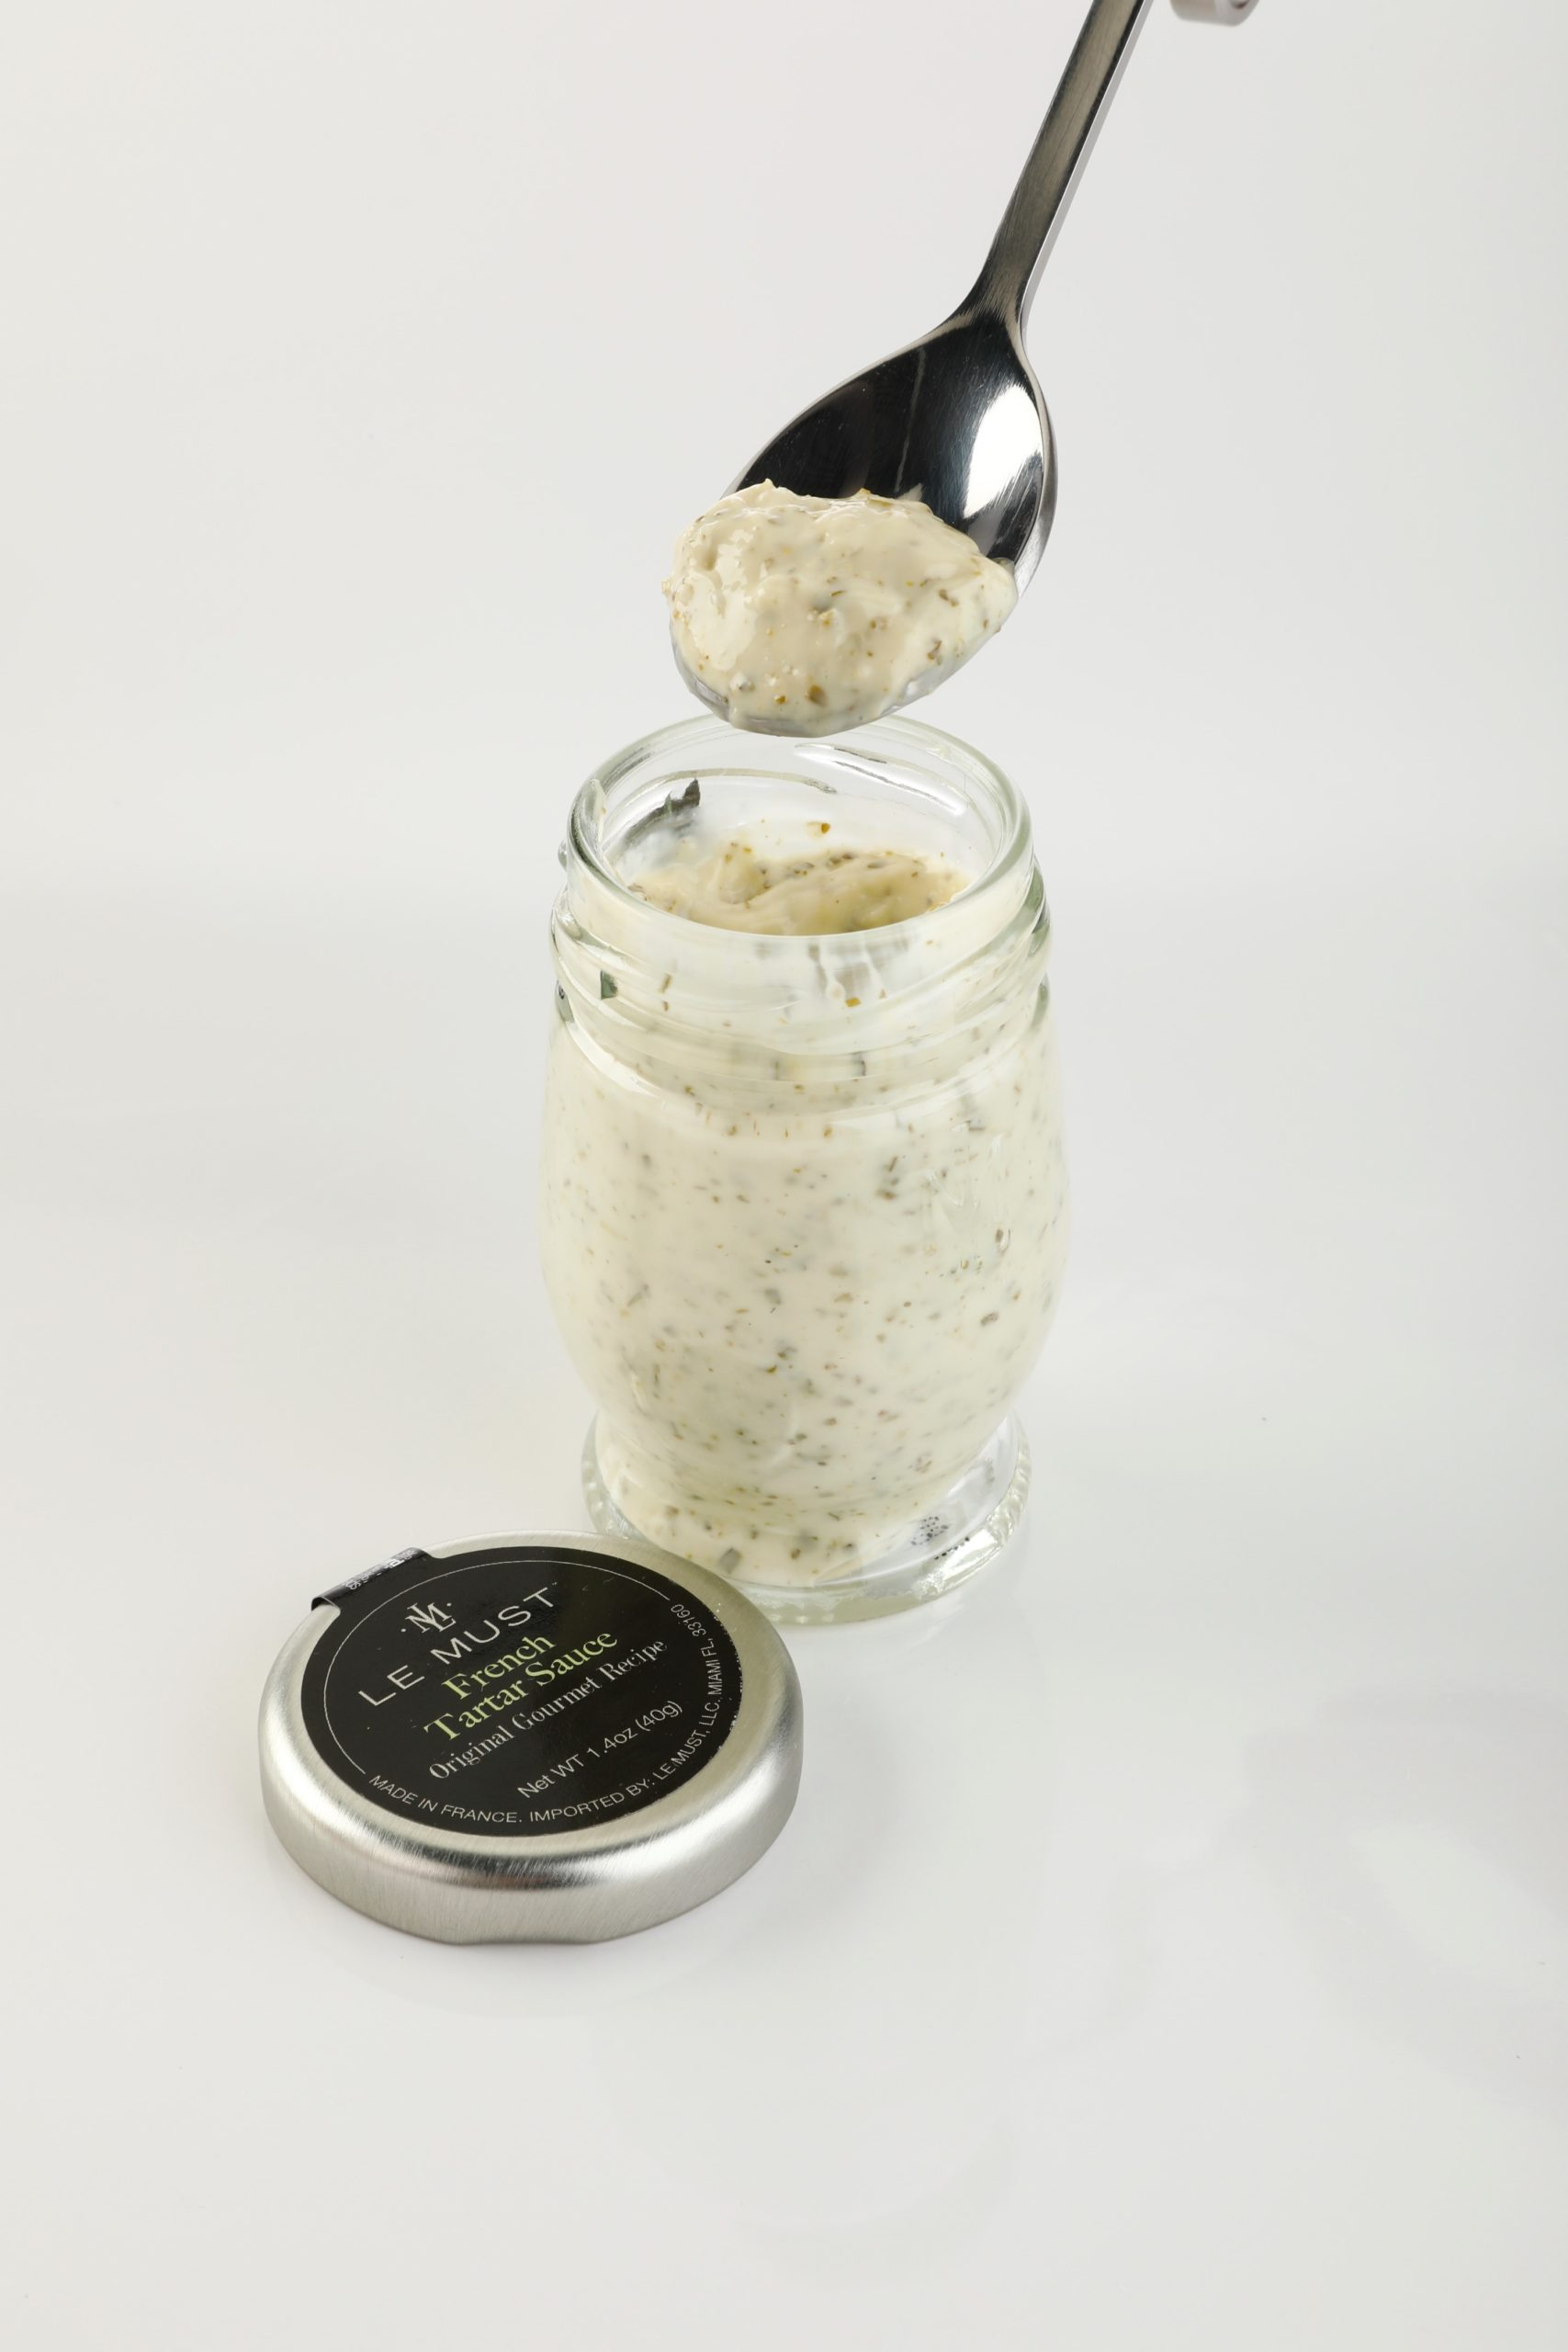 lemust tartar sauce in mini bottles